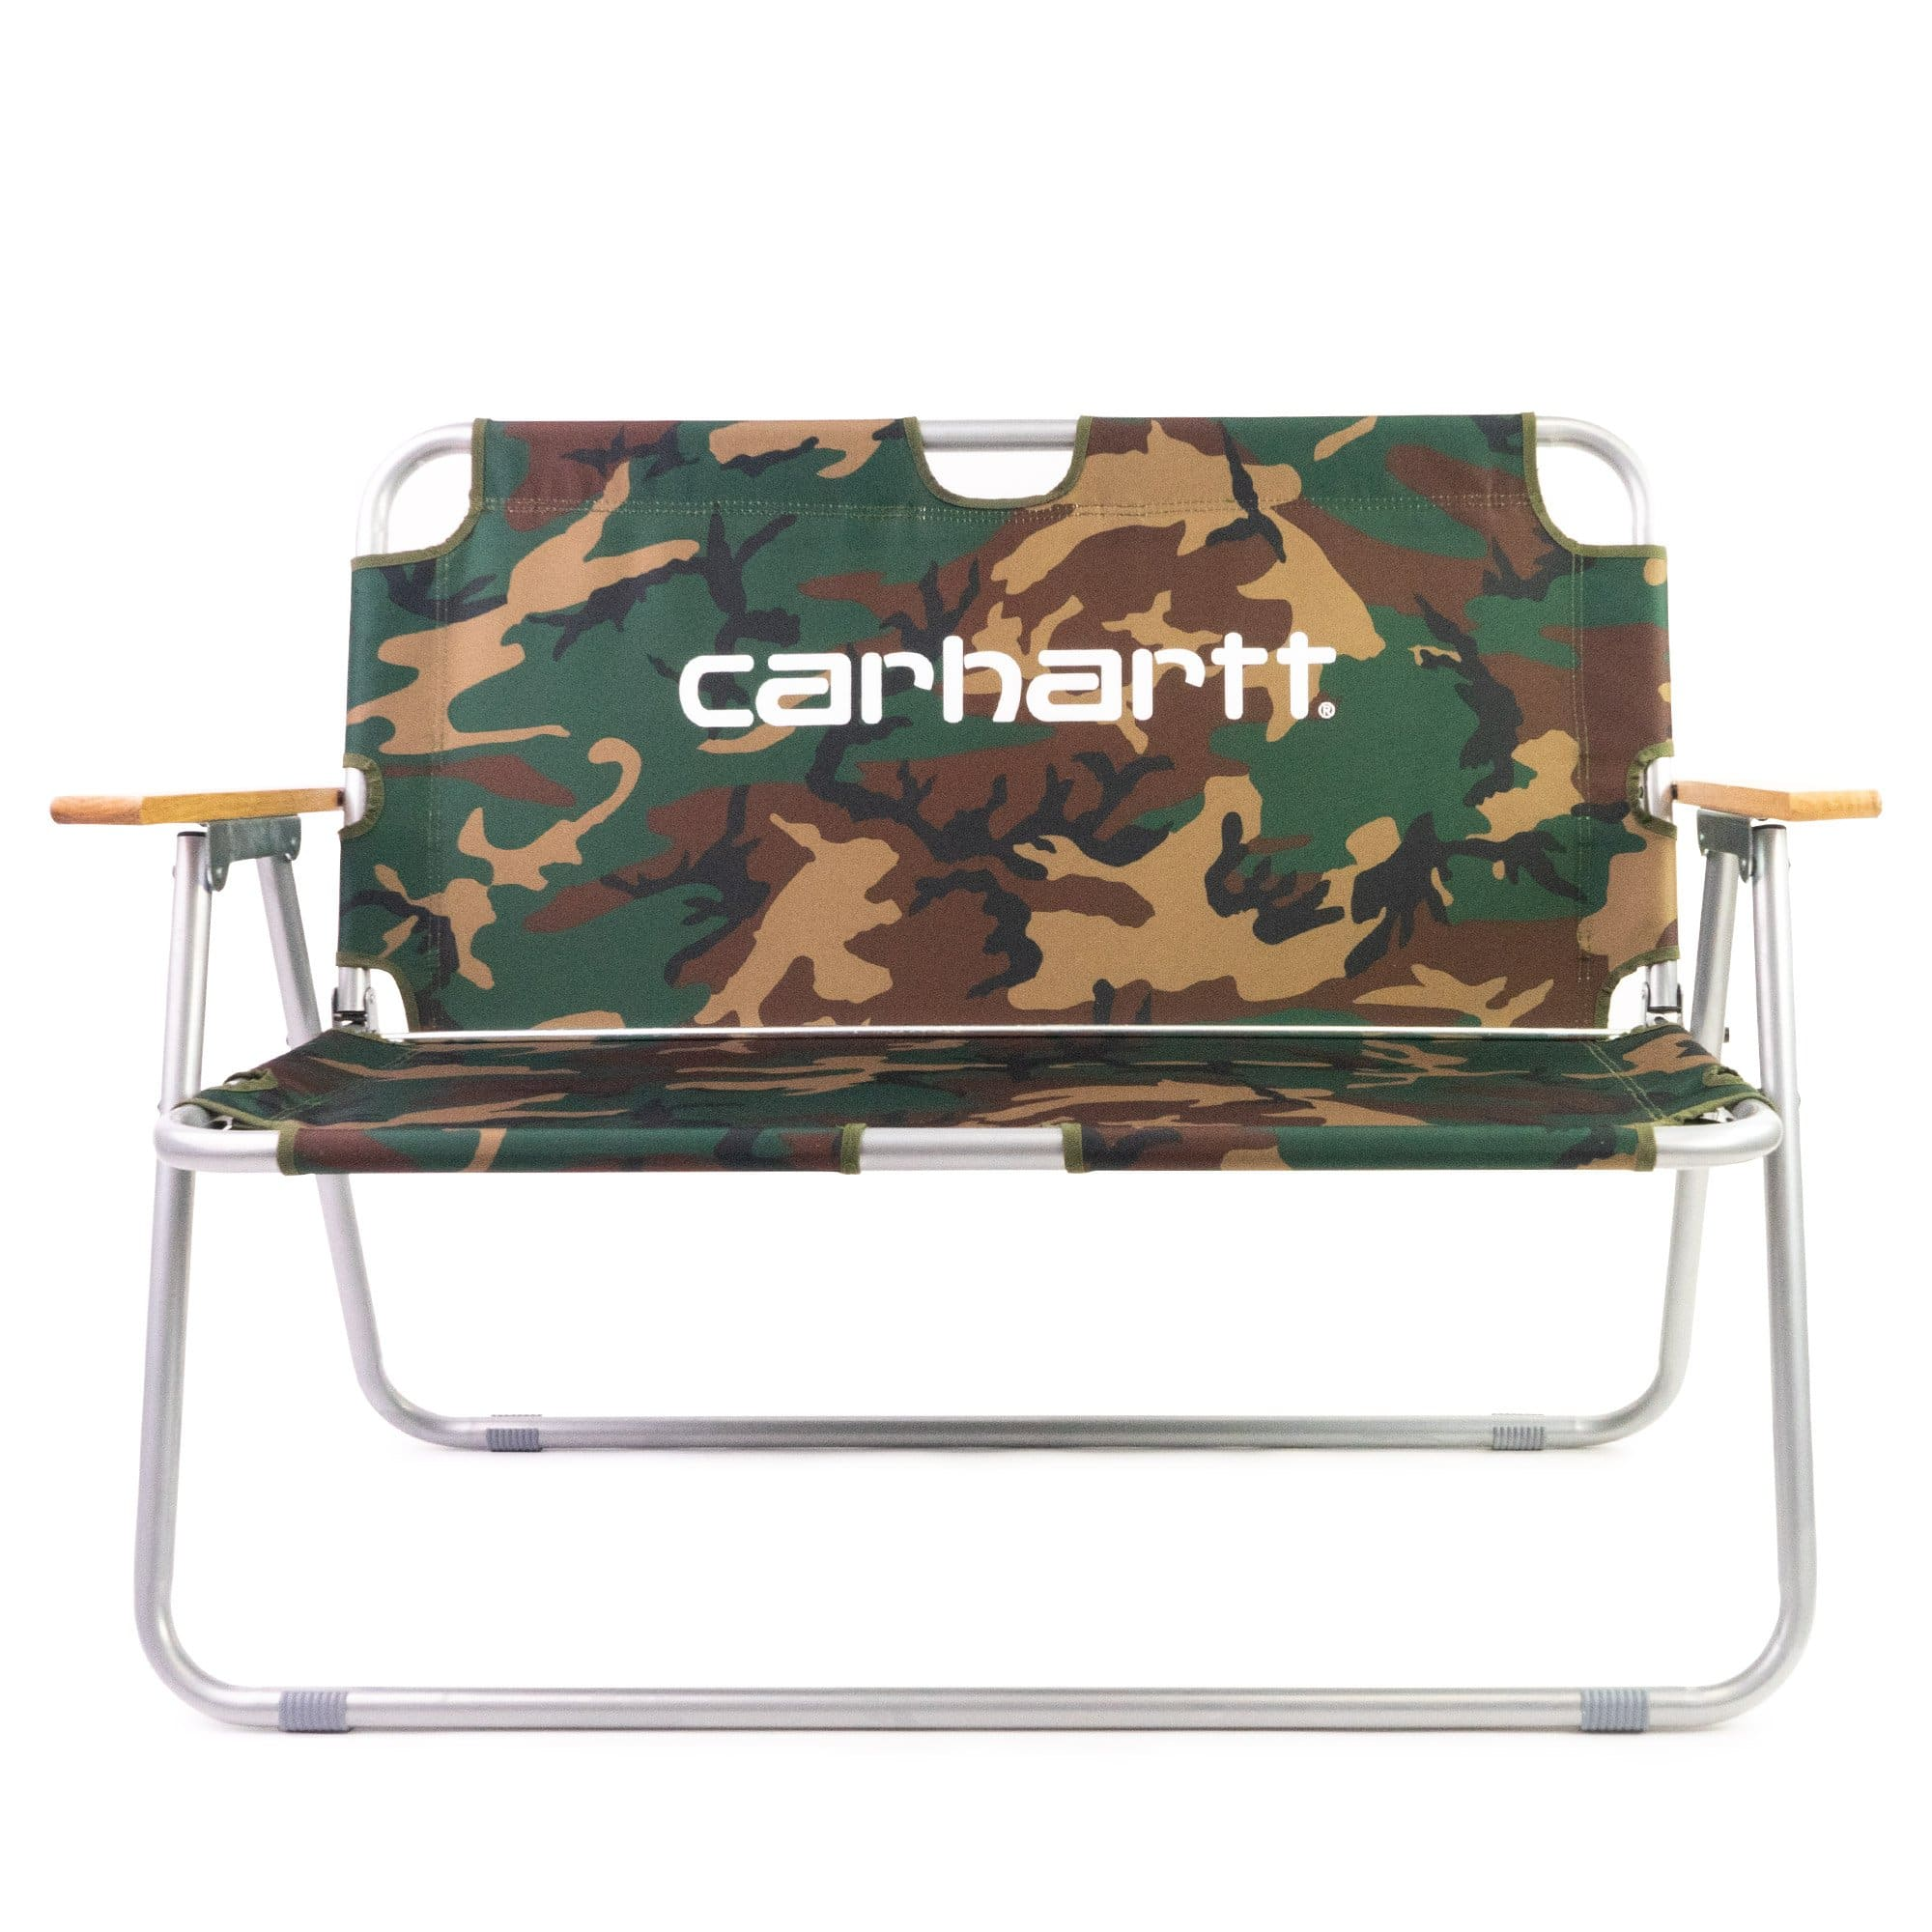 Carhartt WIP Möbel & Accessories Sports Couch